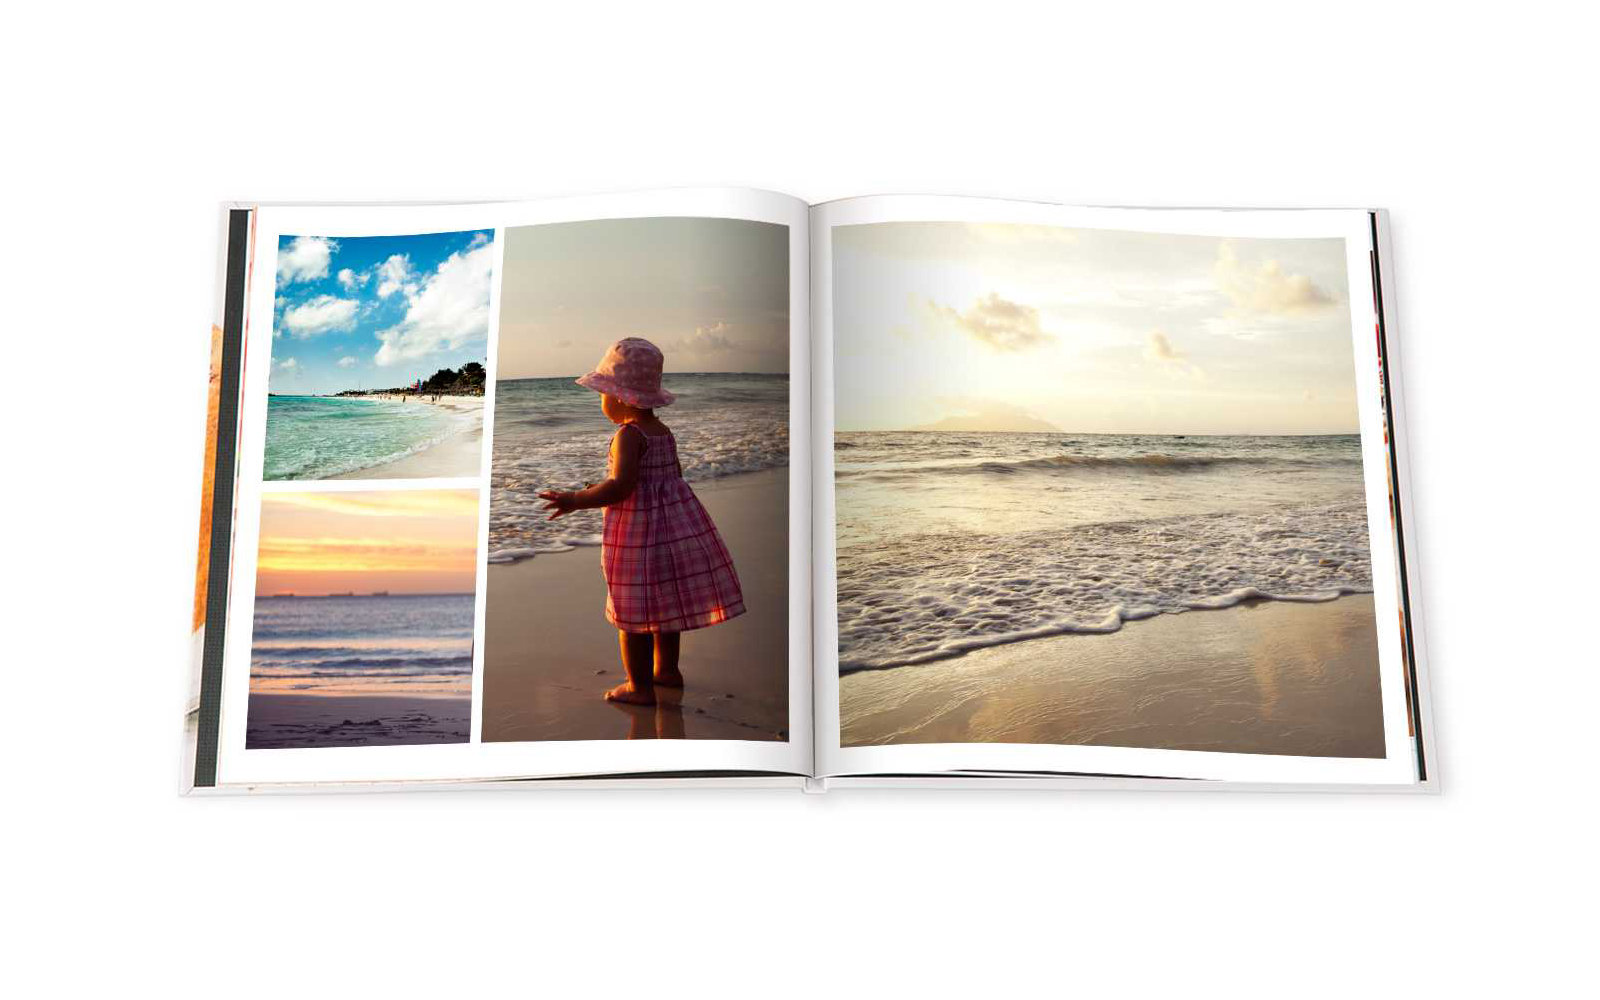 Best for Budget Photo Books: Amazon Prints